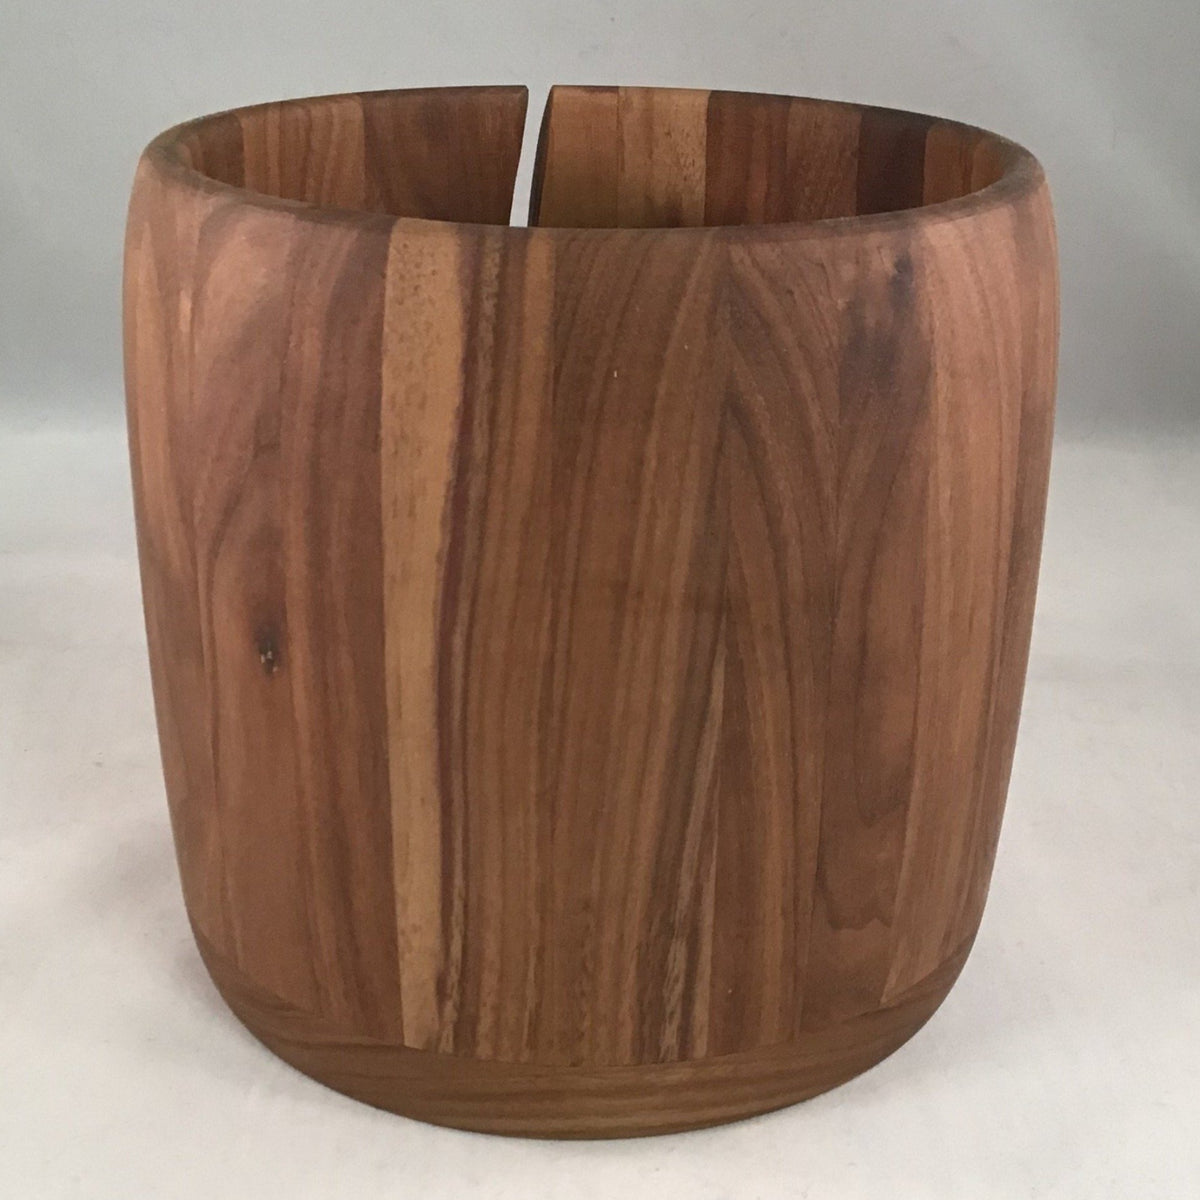 A wooden yarn bowl made from Walnut wood against a white backdrop